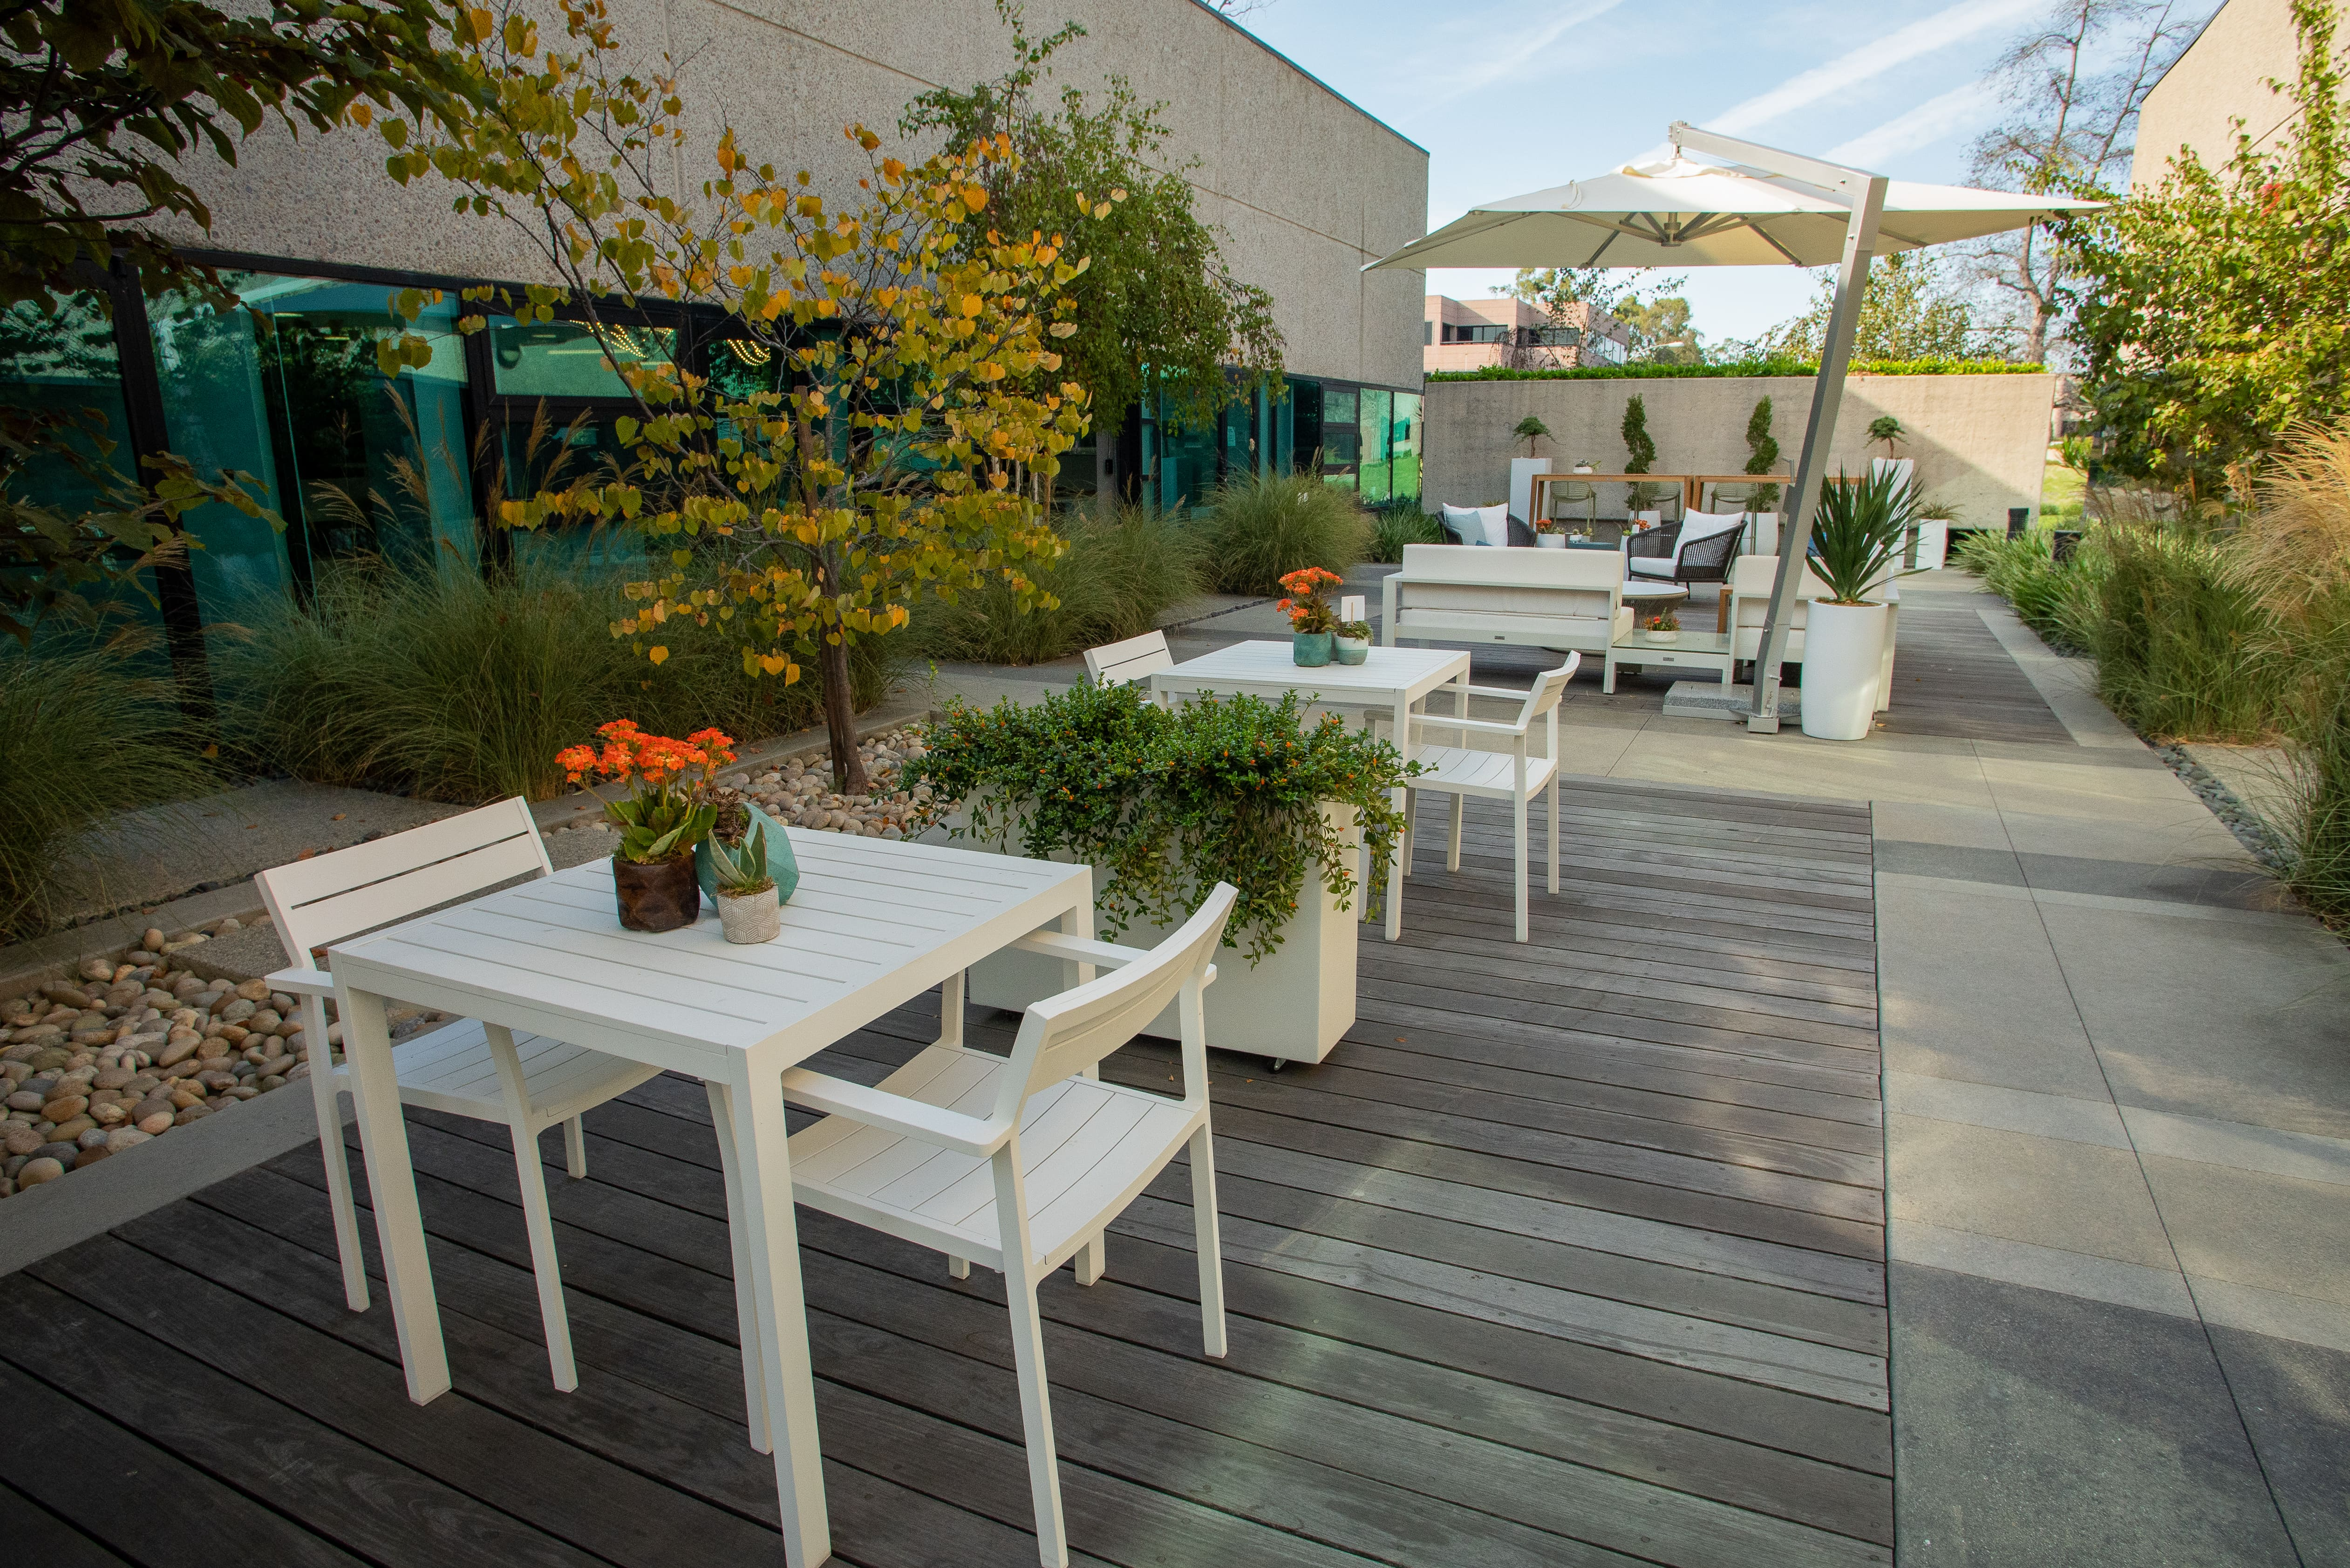 Ahead of workers' return to offices, property managers are already moving dining areas outdoors and spacing out the tables, while a bigger transformation awaits indoor diners. (Cultura)